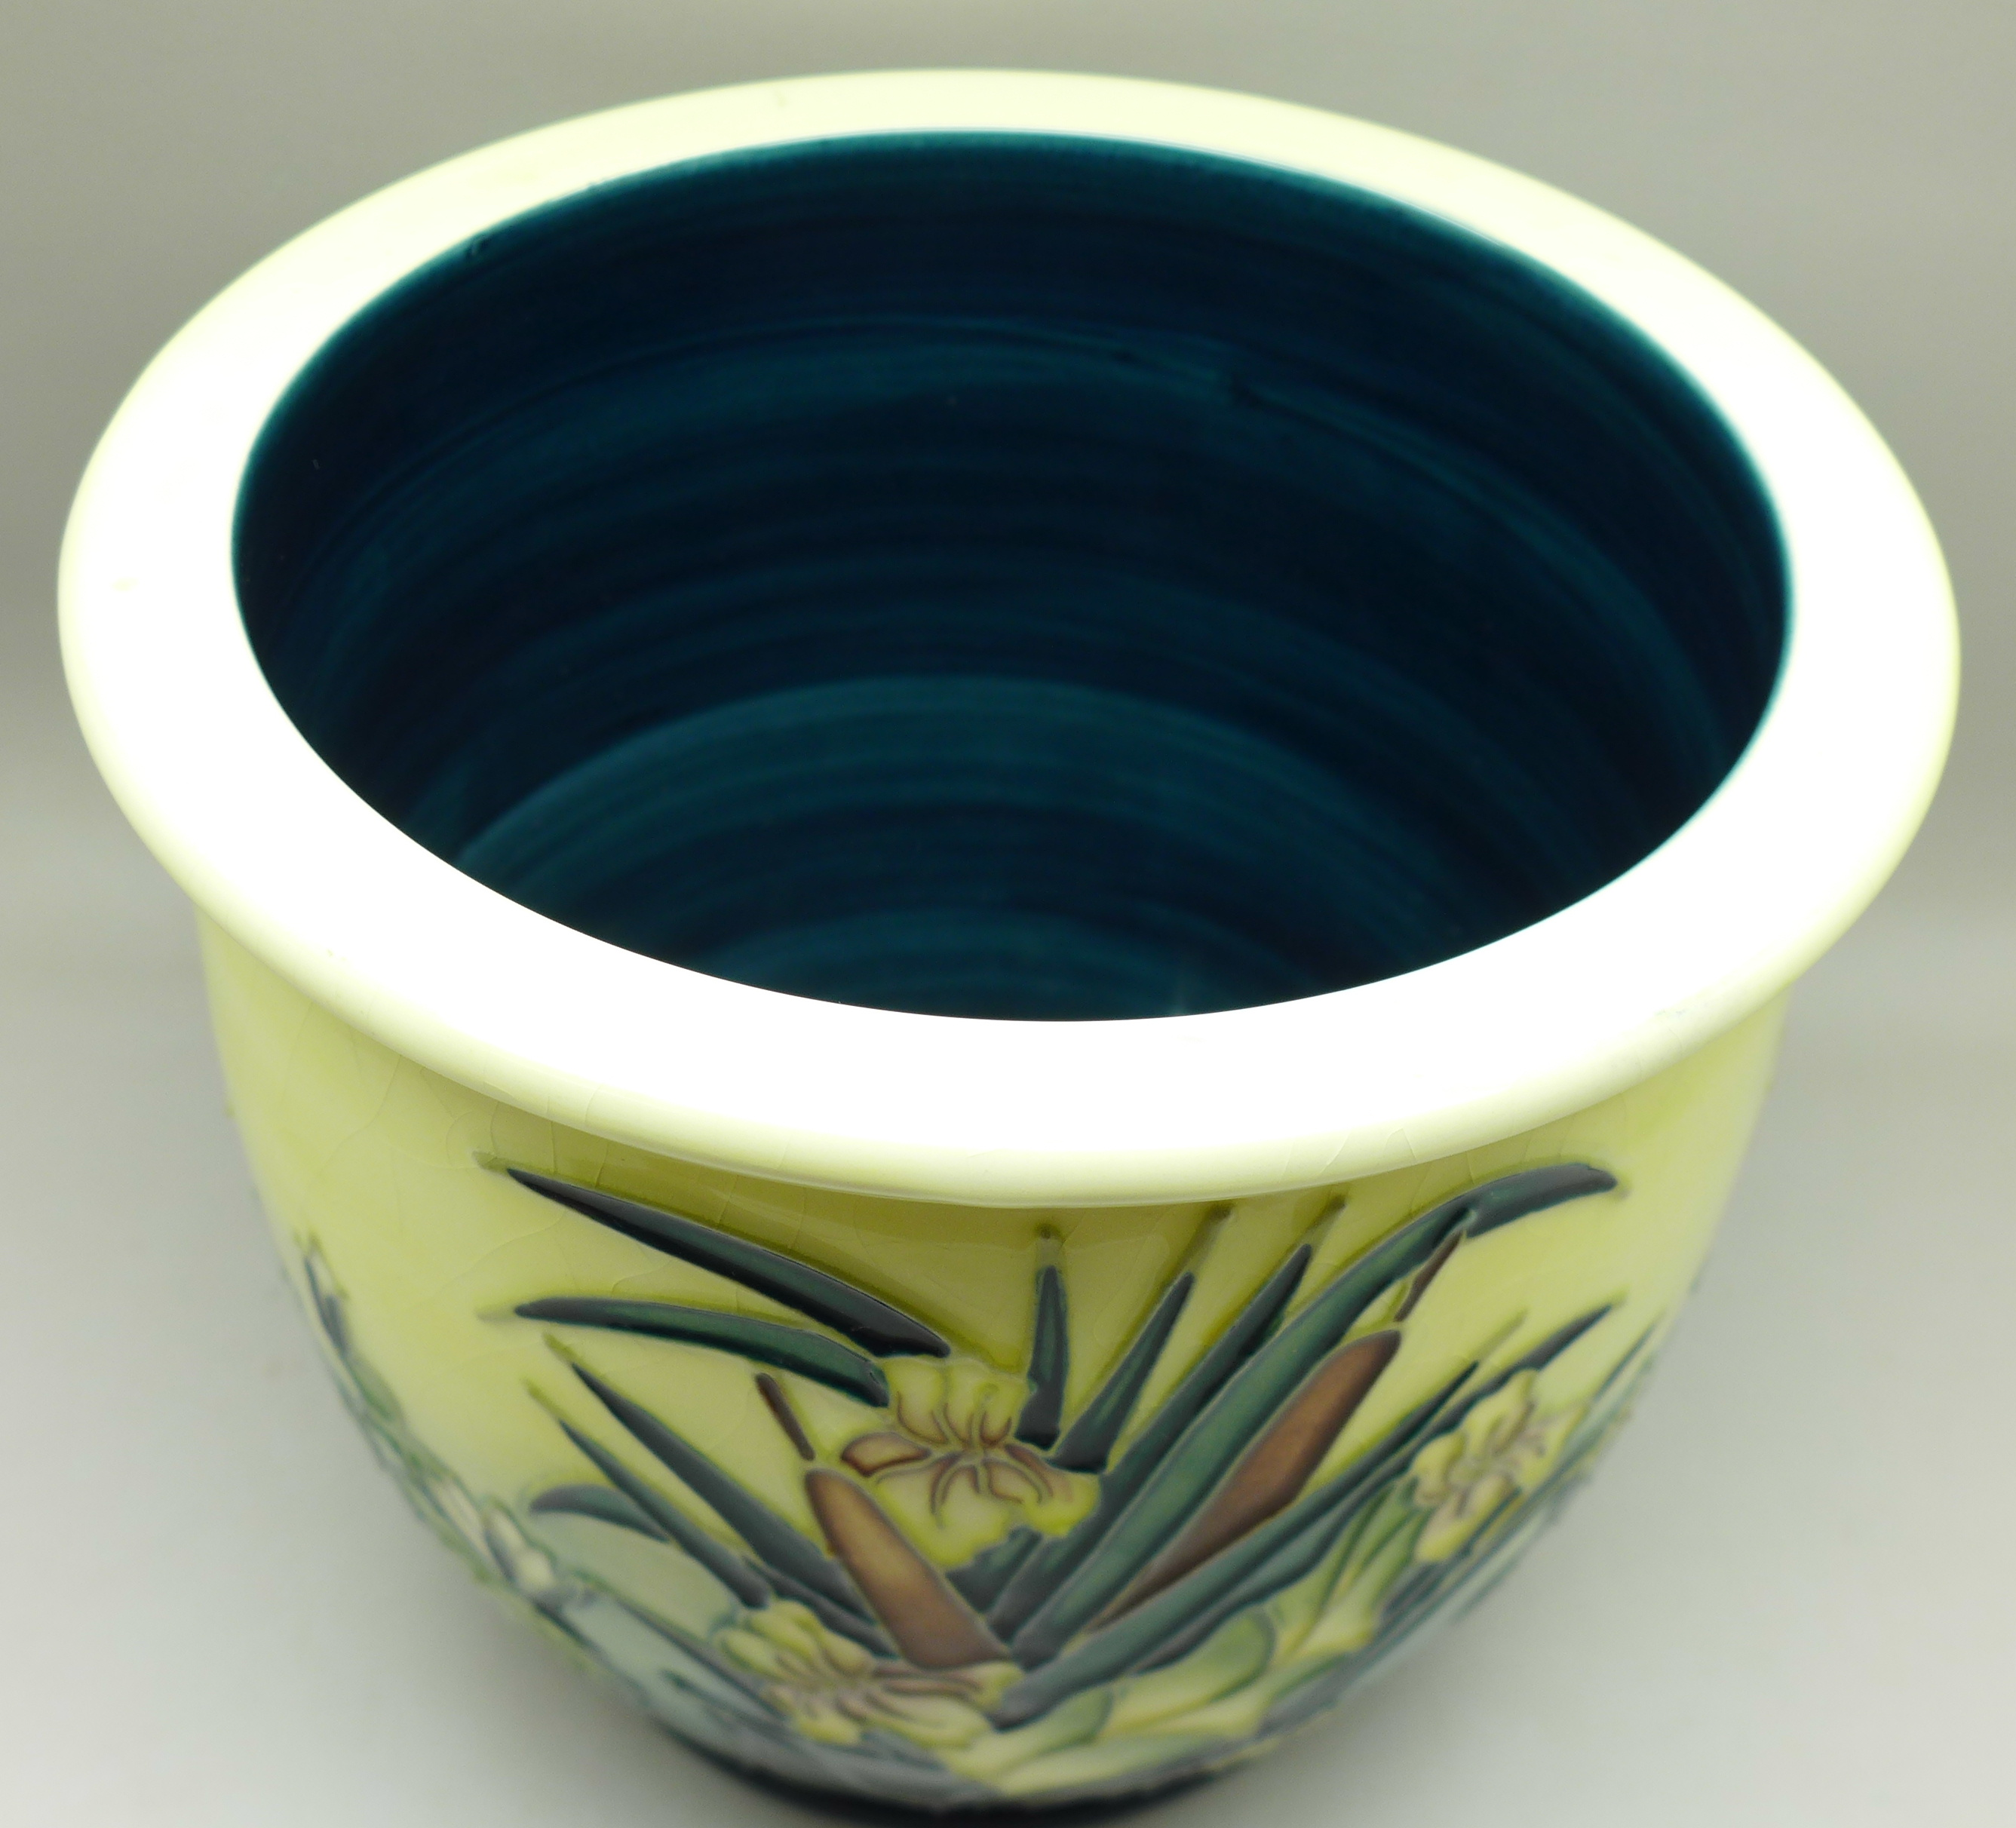 A Moorcroft bullrush planter, AB, 1995, 16.5cm, crazed - Image 2 of 6